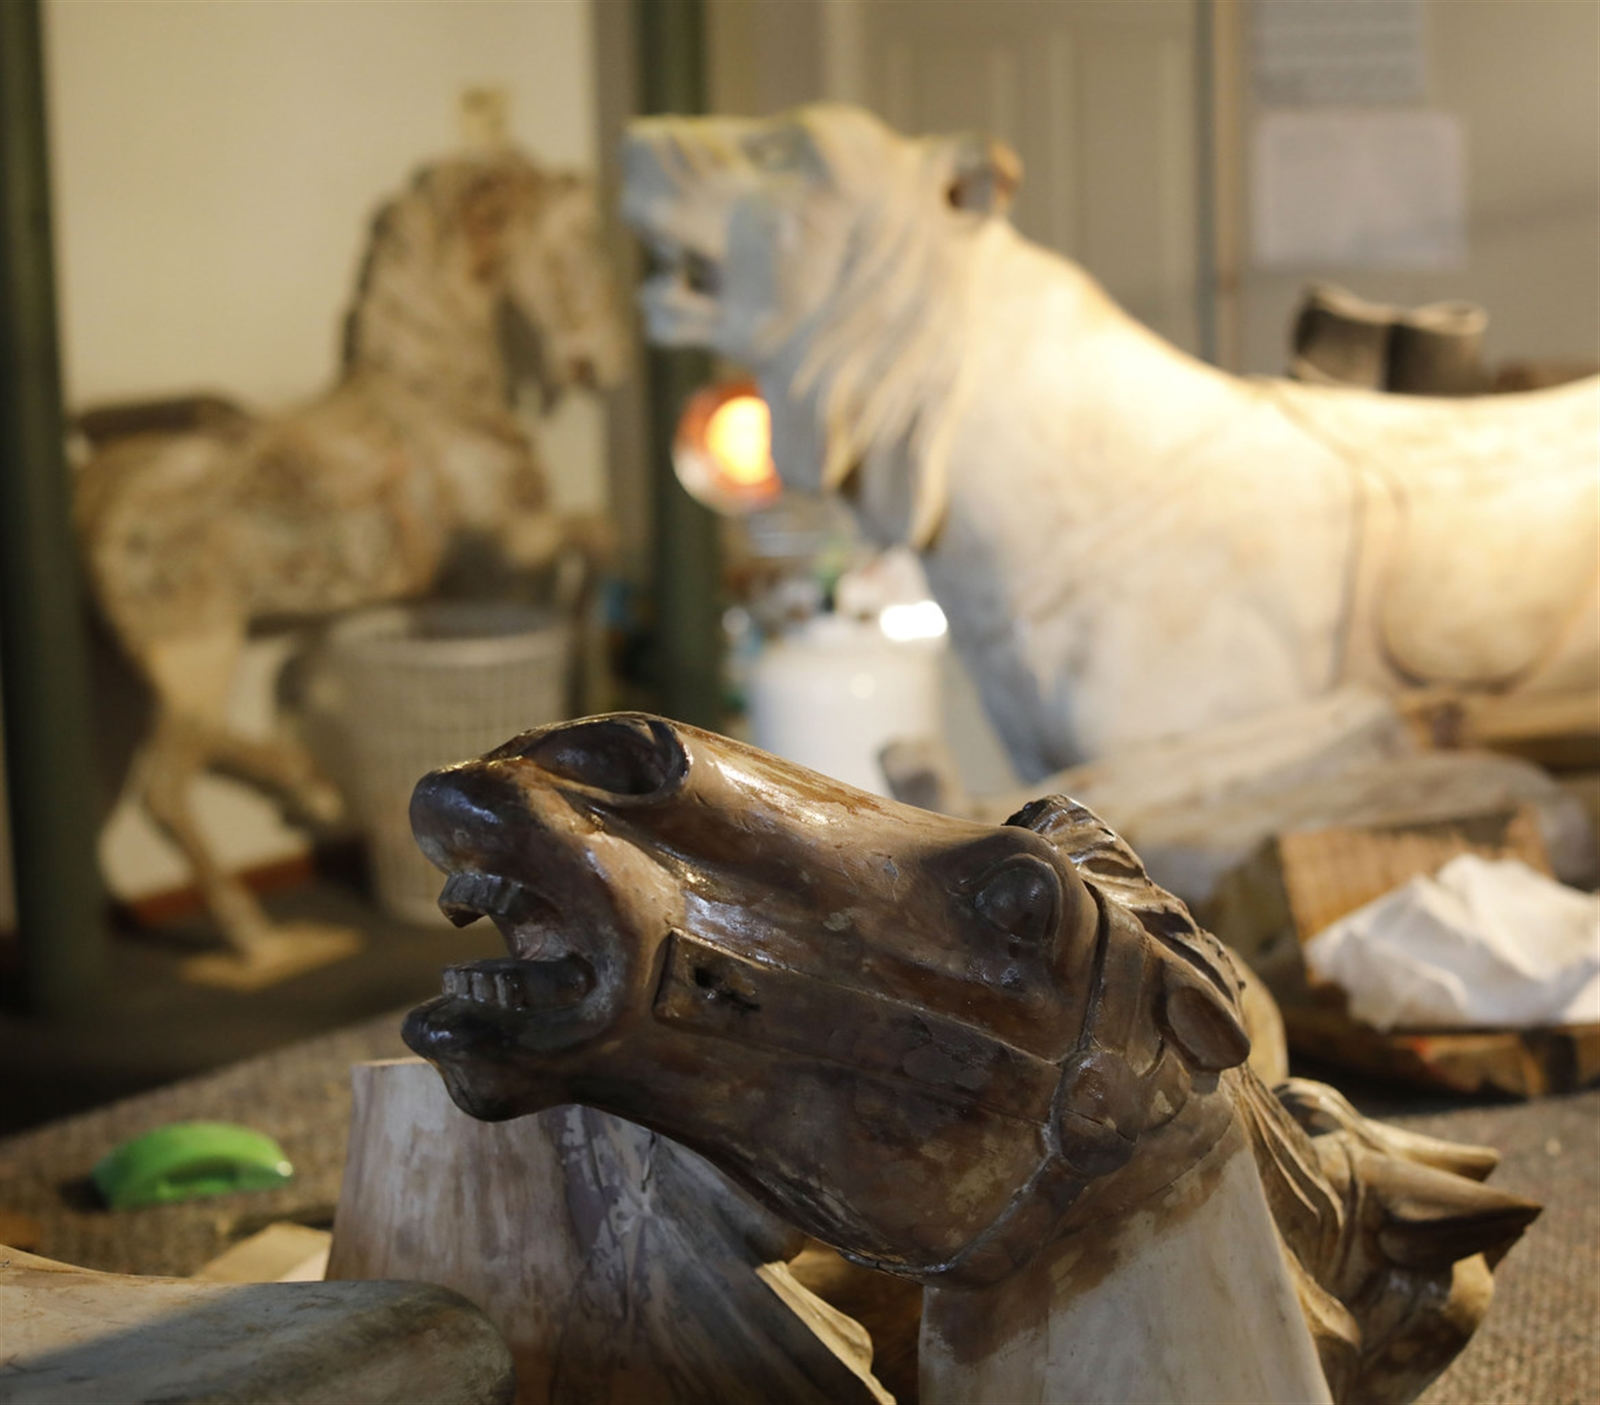 Pieces of horses are meticulously repaired in the carving shop.